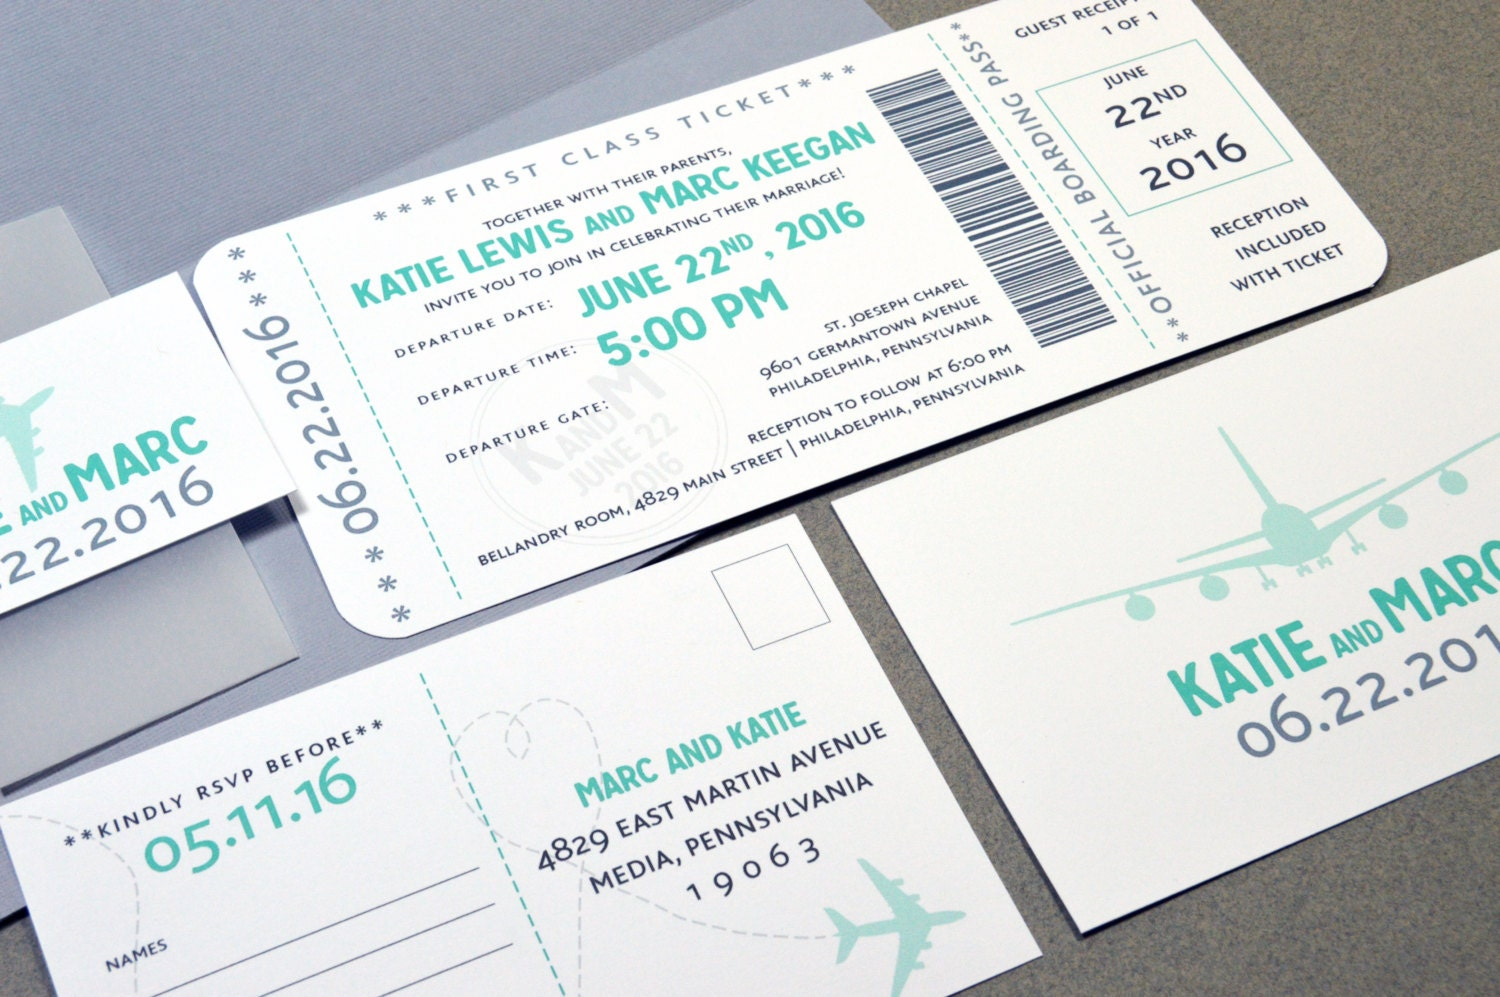 Invitation Ticket Boarding Pass Wedding Invitations Plane Ticket Invite Set Aqua